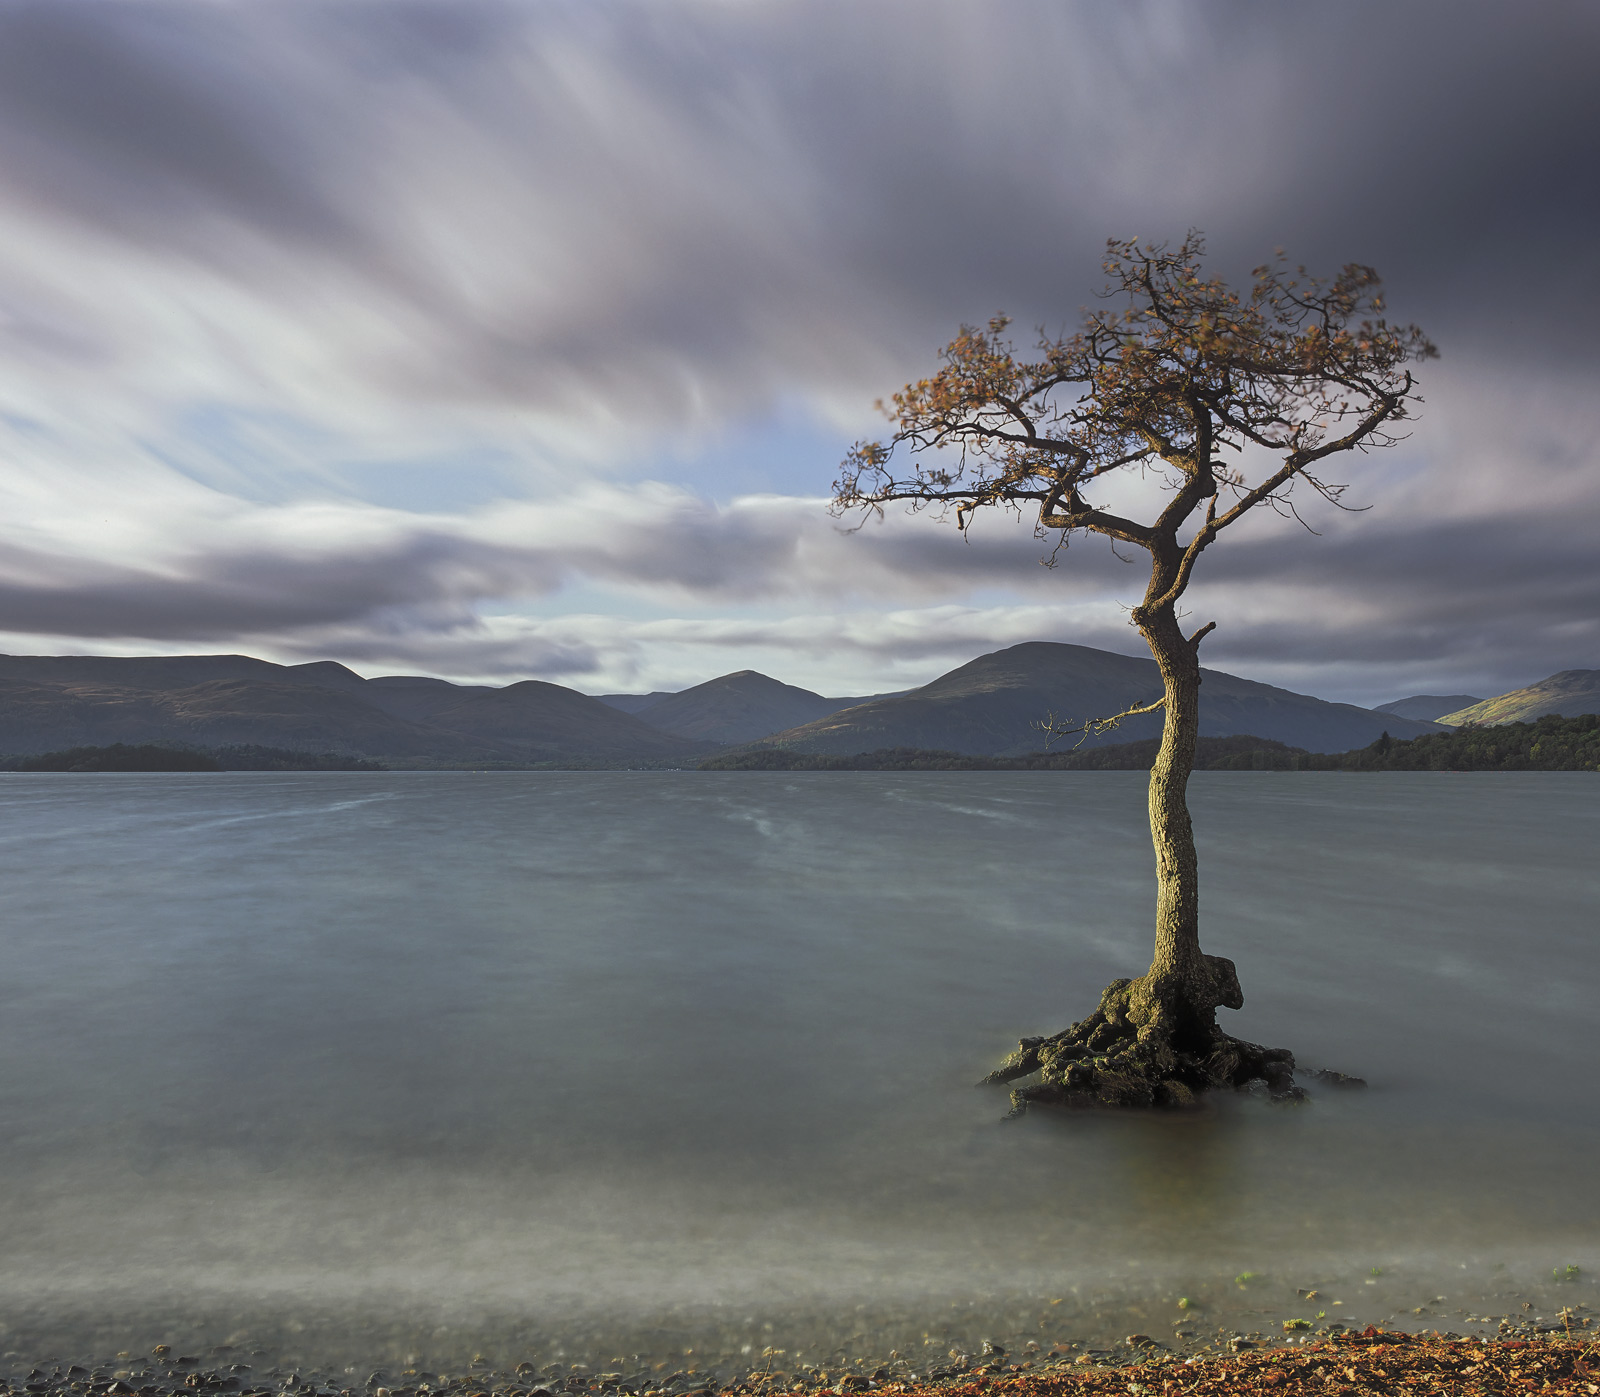 This gorgeous little tree just occasionally gets marooned in the waters of Loch Lomond during a bout of extremely wet weather...